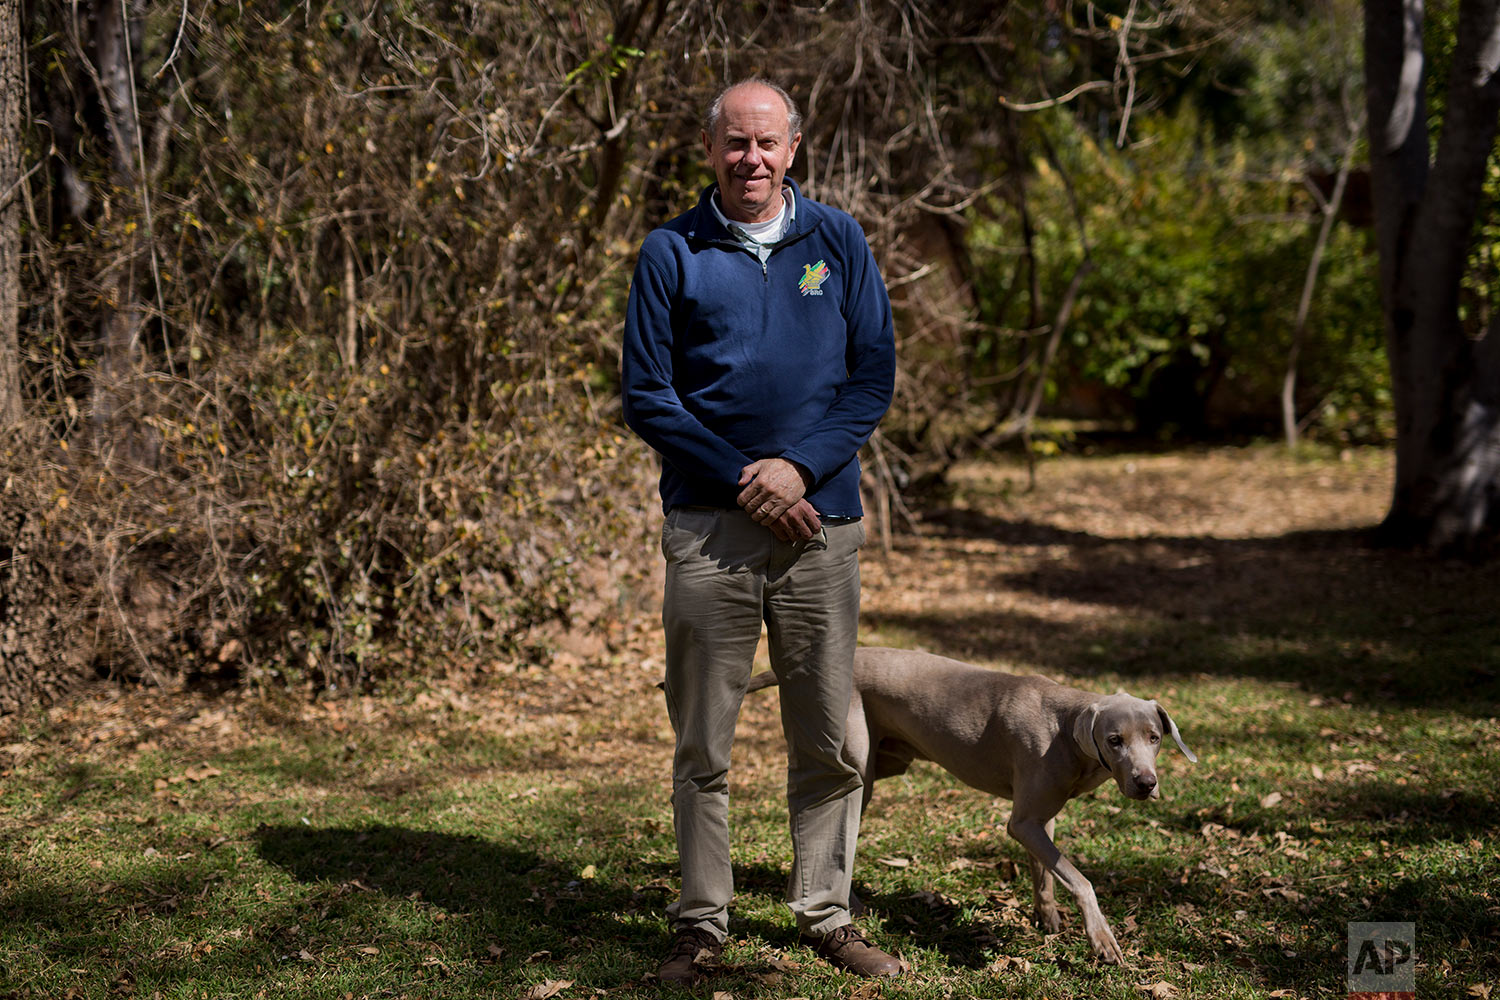 Human rights lawyer and opposition candidate in the July 30 legislative elections David Coltart poses in the garden of his residence in Bulawayo, Zimbabwe. (AP Photo/Jerome Delay)